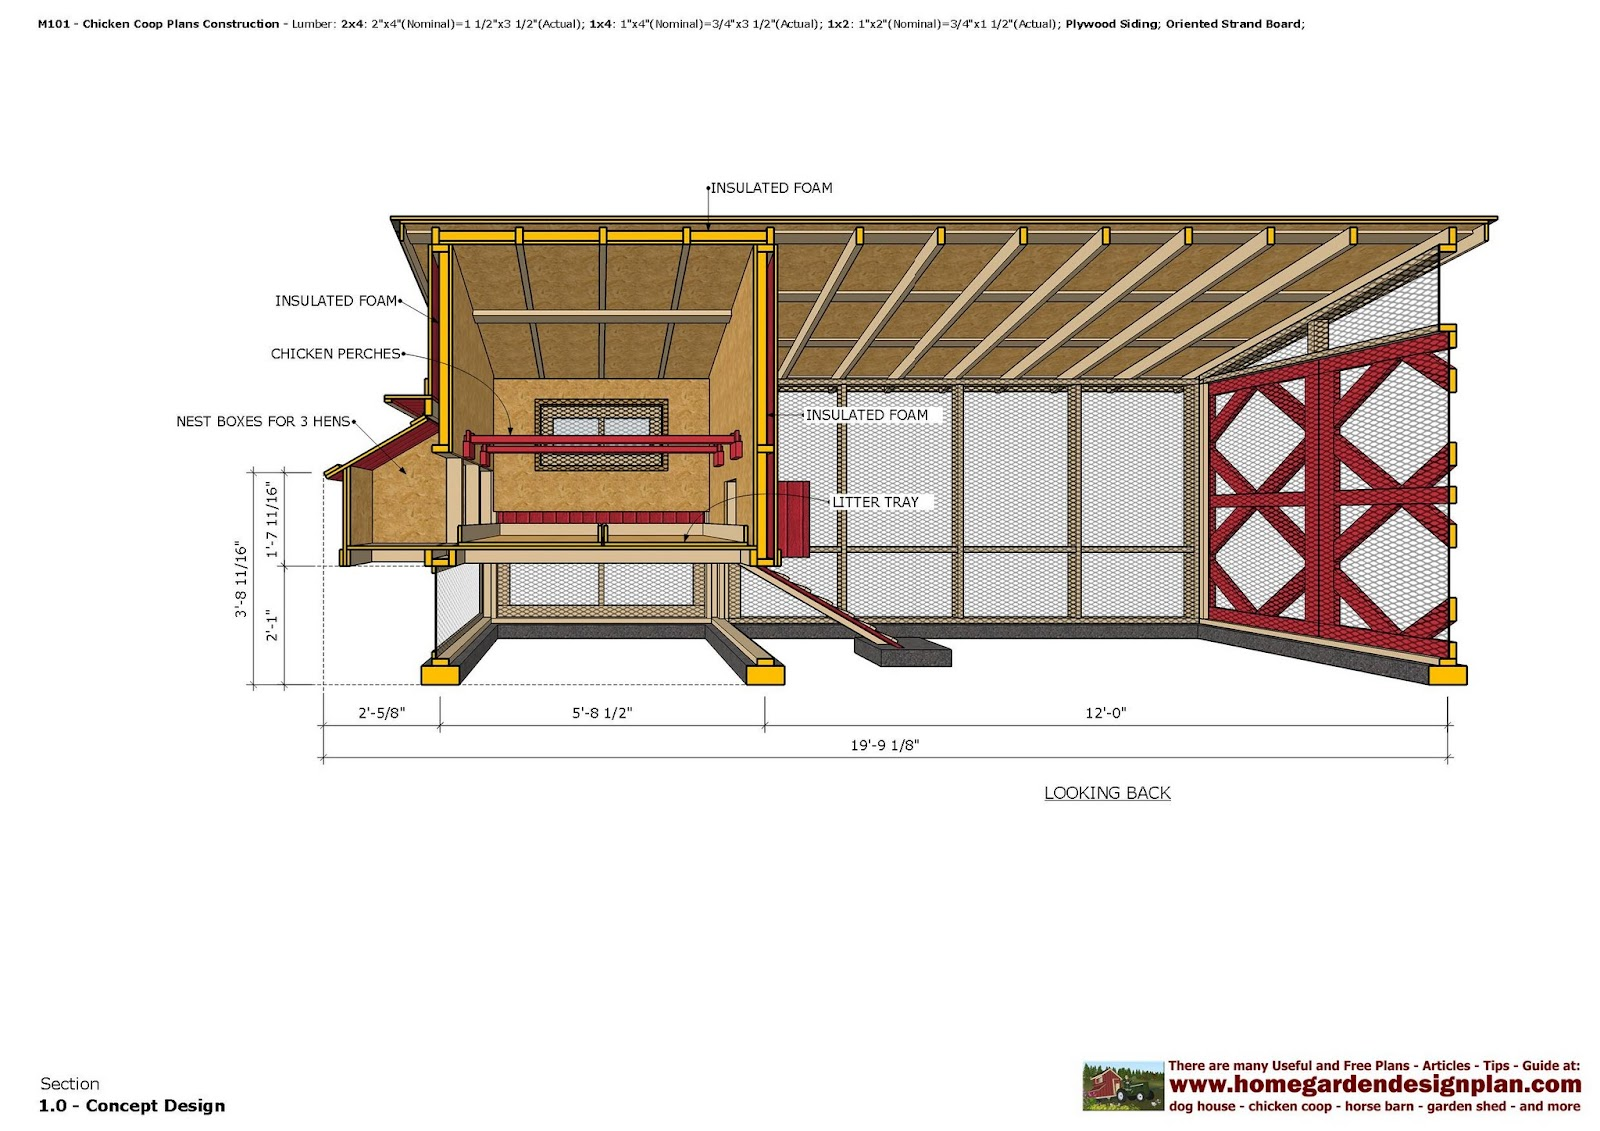 Home garden plans m101 chicken coop plans construction for Chicken coop dimensions